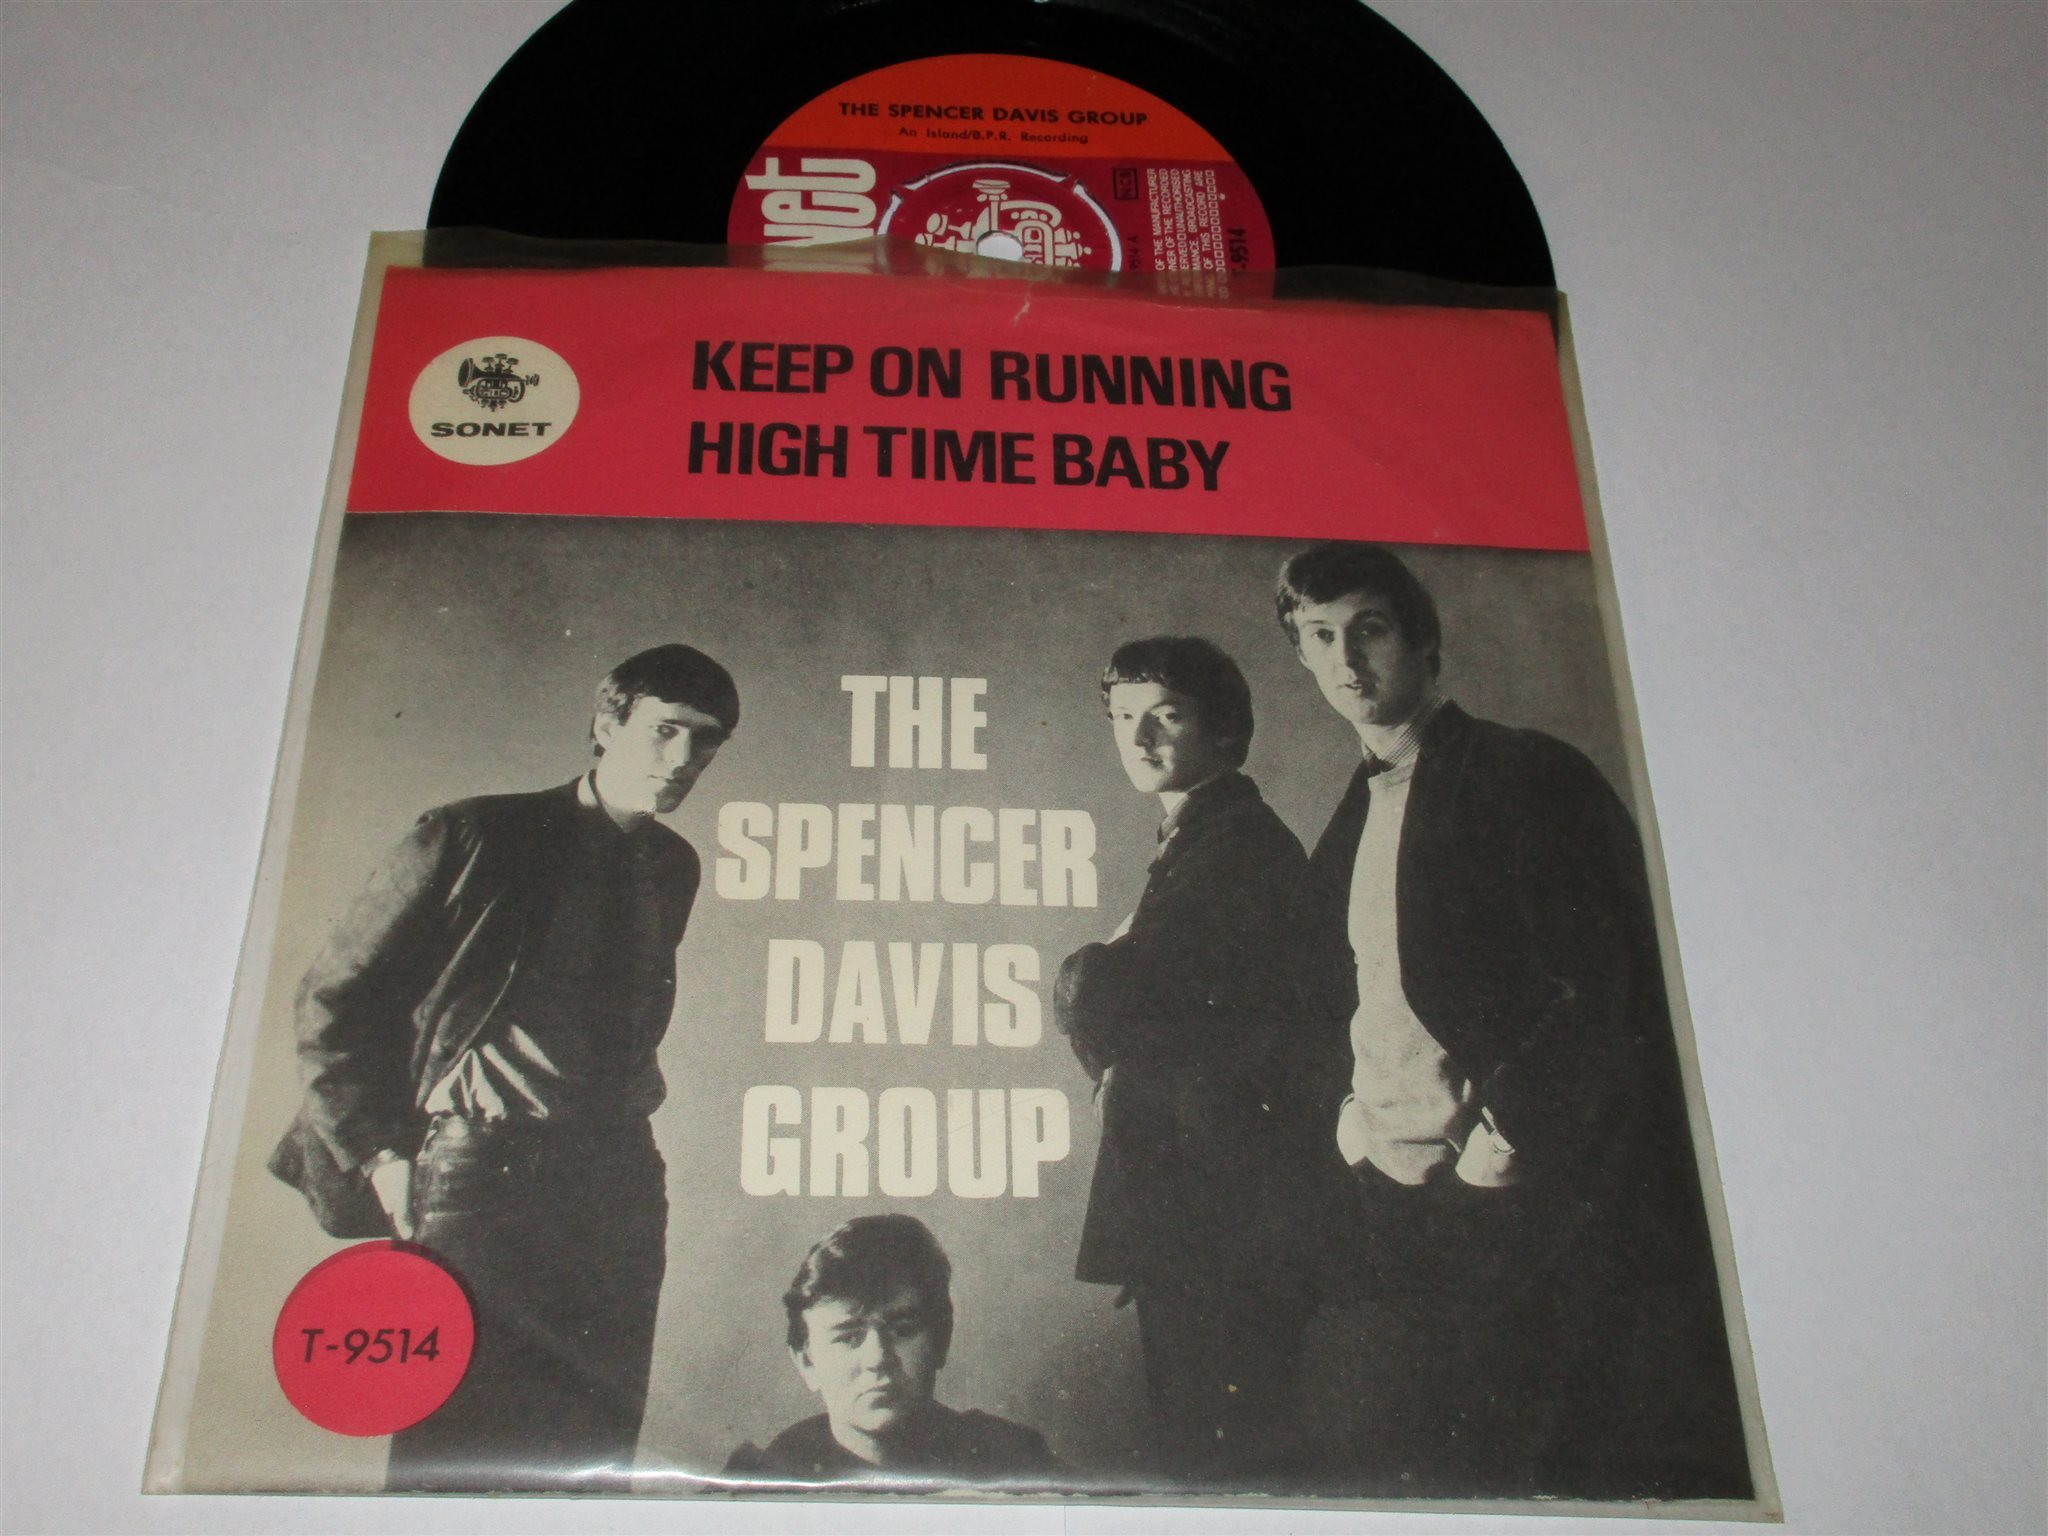 THE SPENCER DAVIS GROUP SWE SINGEL KEEP ON RUNNING